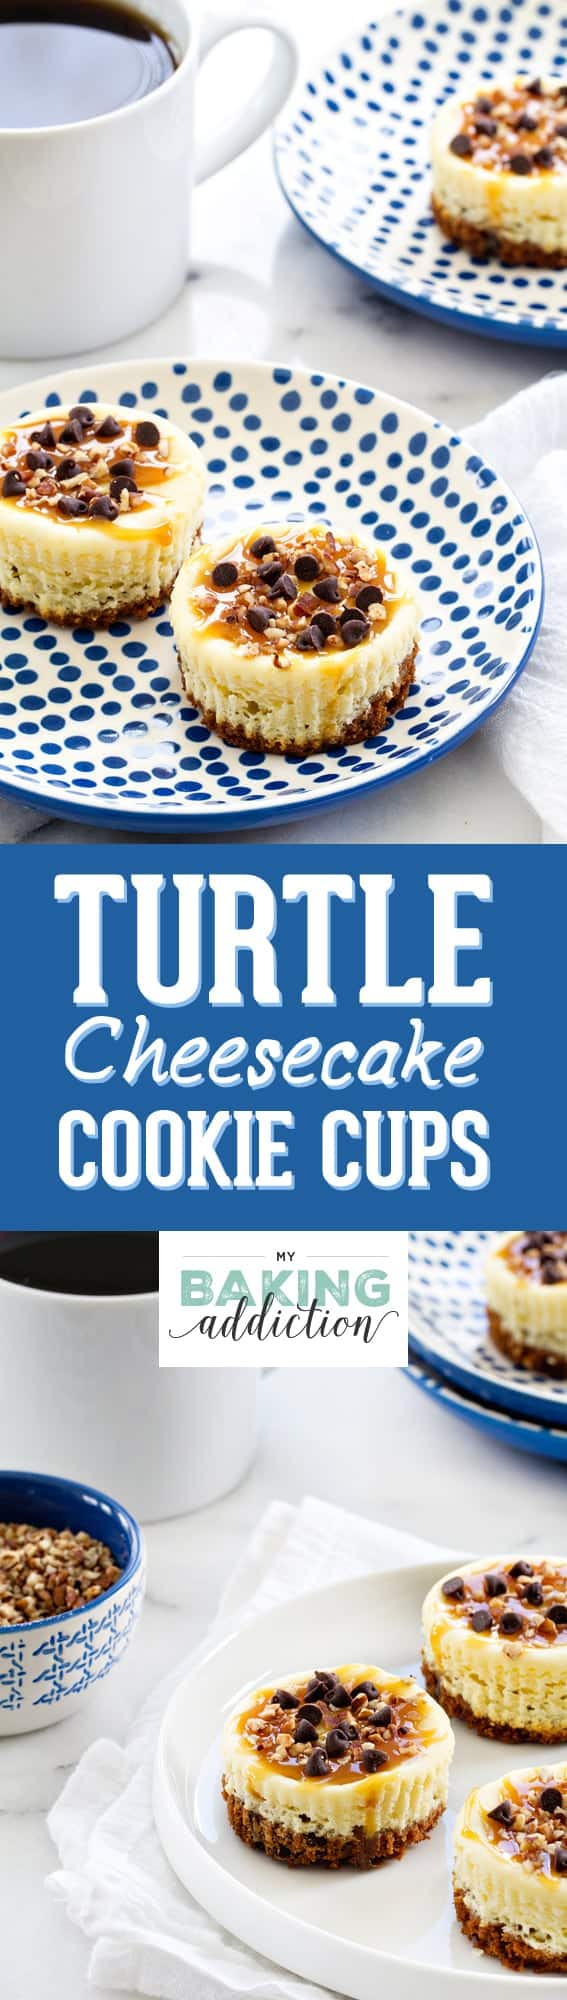 Turtle Cheesecake Cookie Cups are completely indulgent treats. And since they're mini, you can have a few!